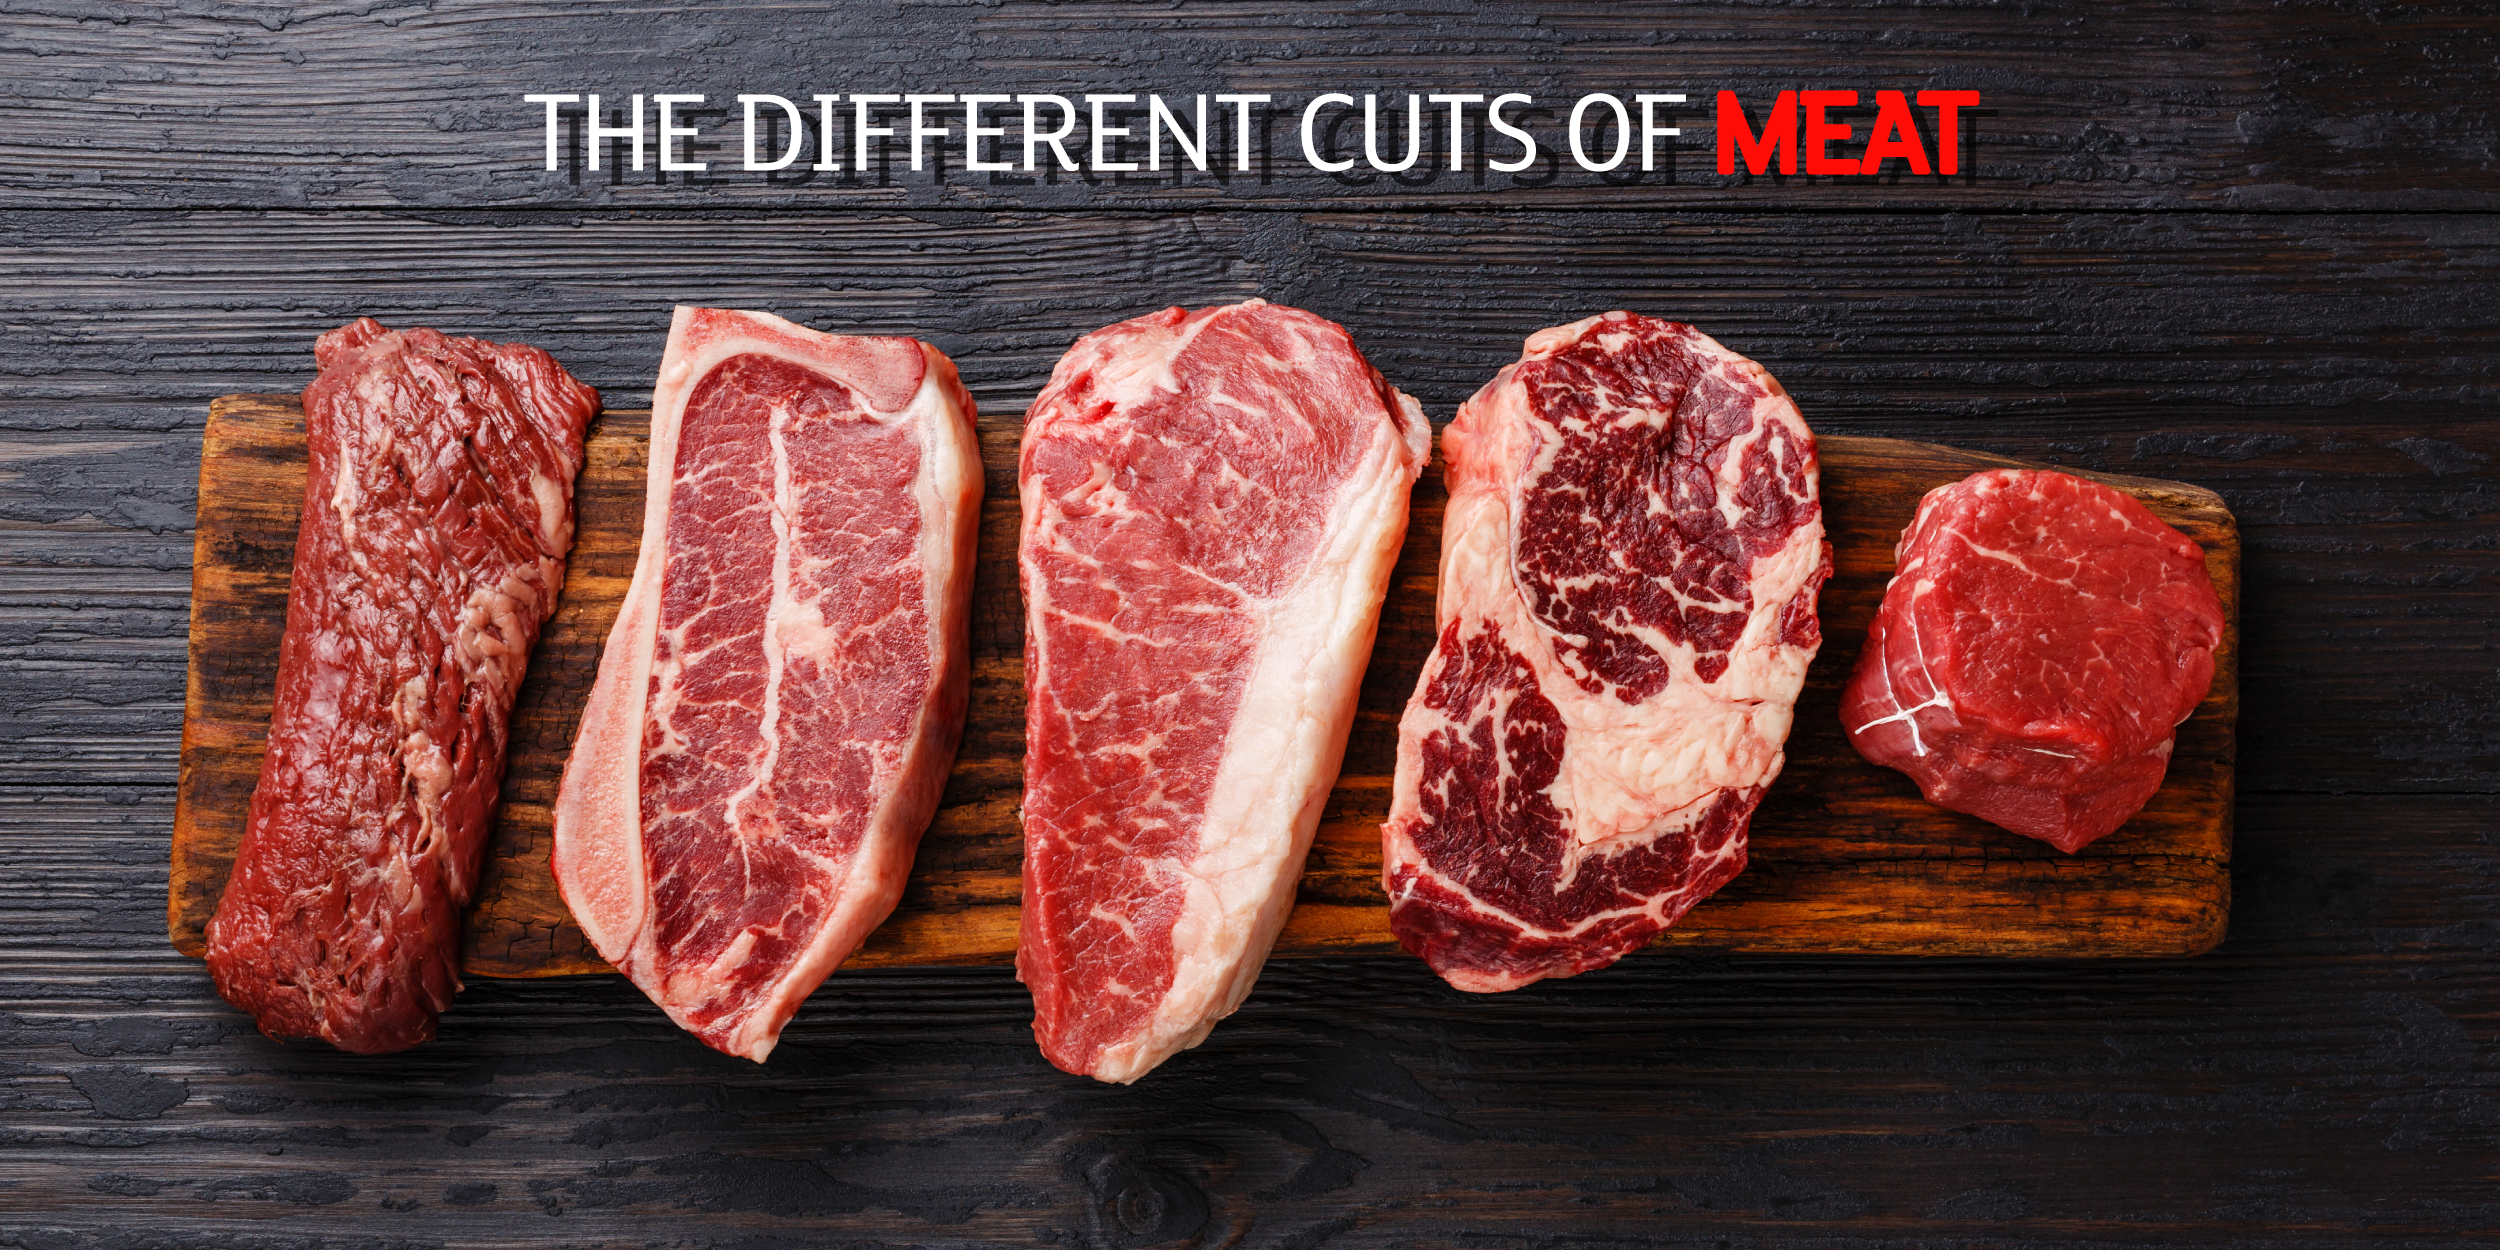 The different cuts of meat